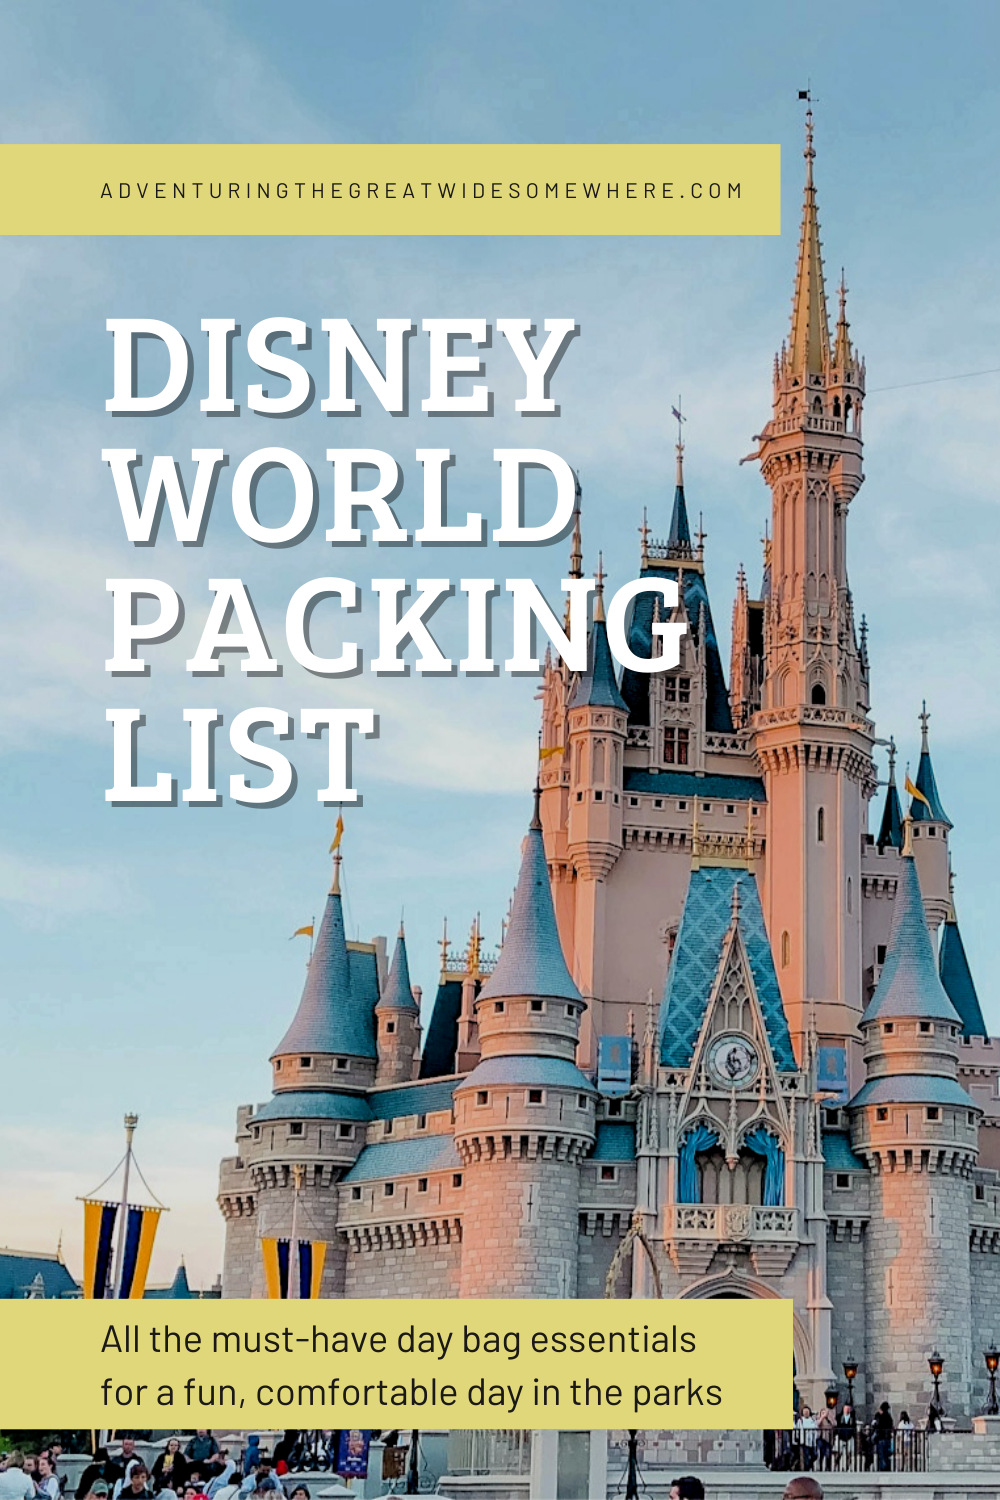 Walt Disney World Packing List Park Day Essentials In 2021 Disney World Packing Packing List Travel Fun